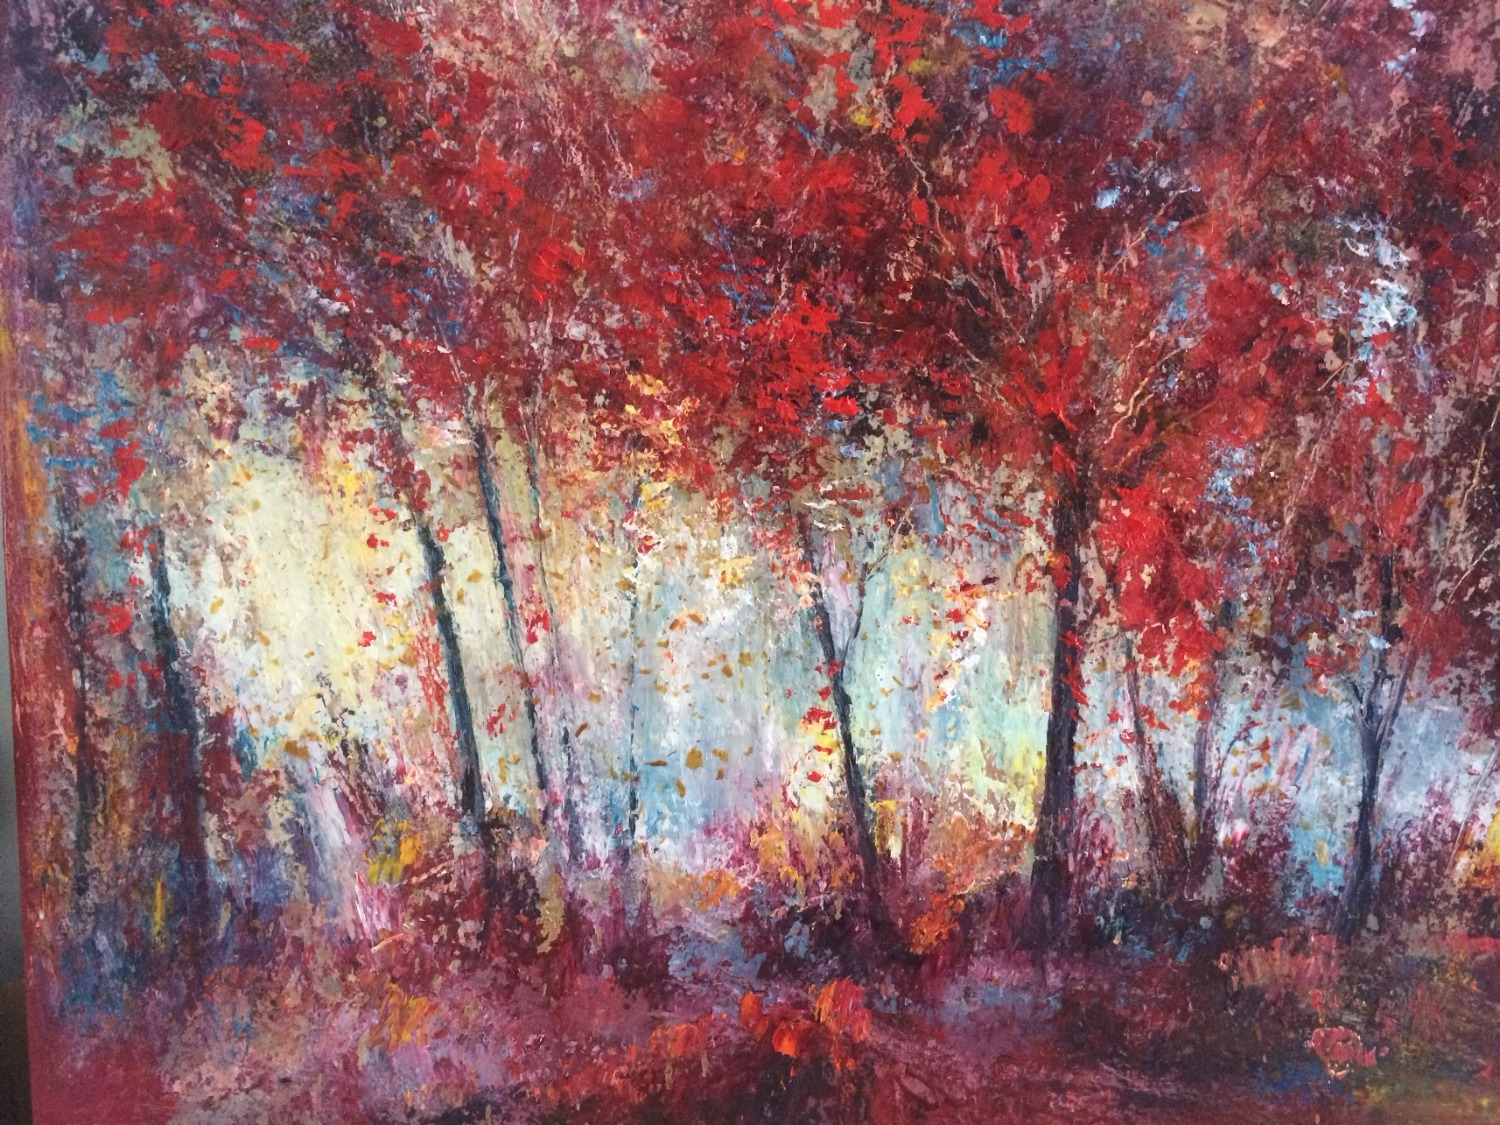 Falling leaves II (SOLD)